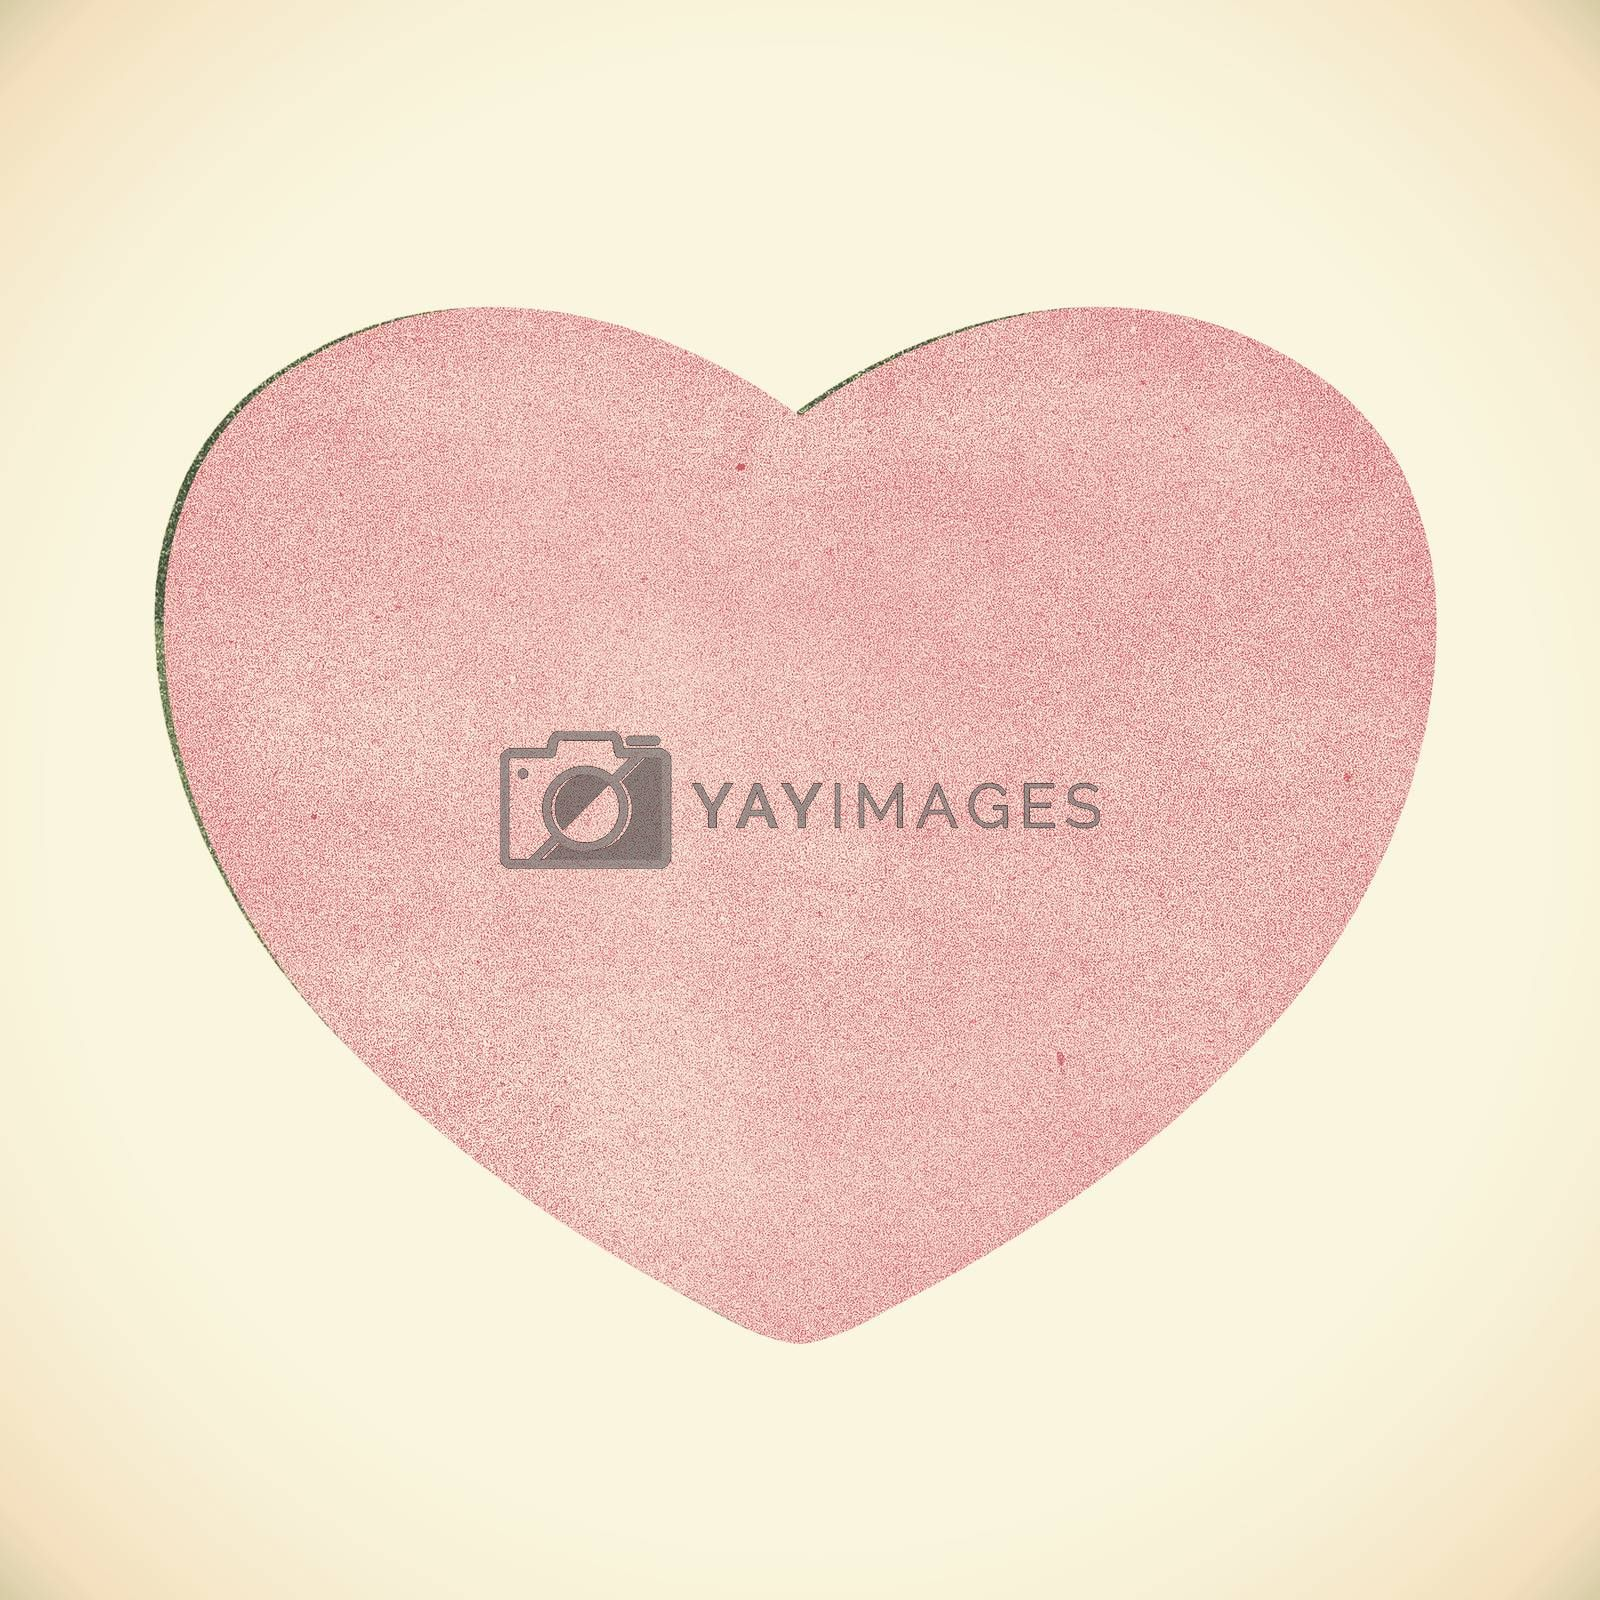 Vintage heart recycled paper on white background by jakgree